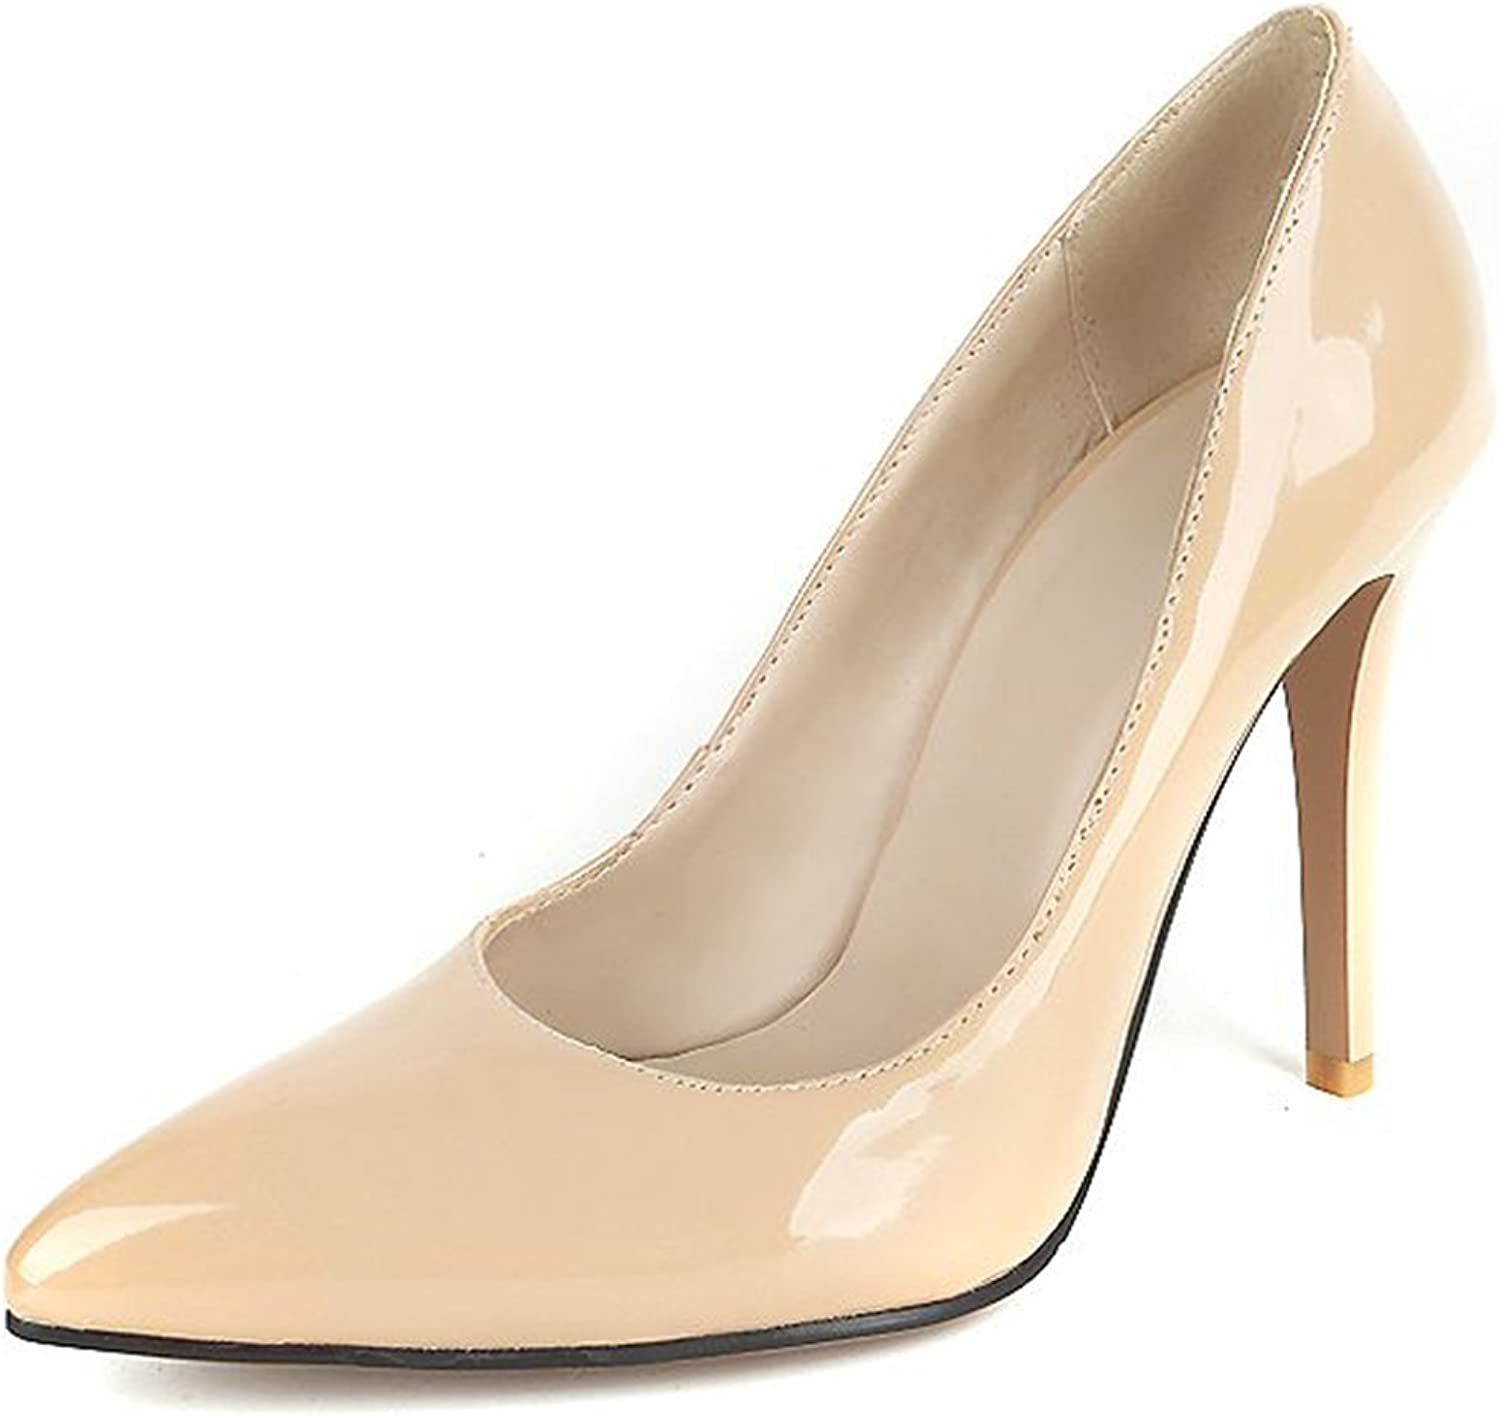 Kaloosh Women's Classy Patent Leather Pointed Toe Stiletto High Heel Office Court shoes Party Pumps